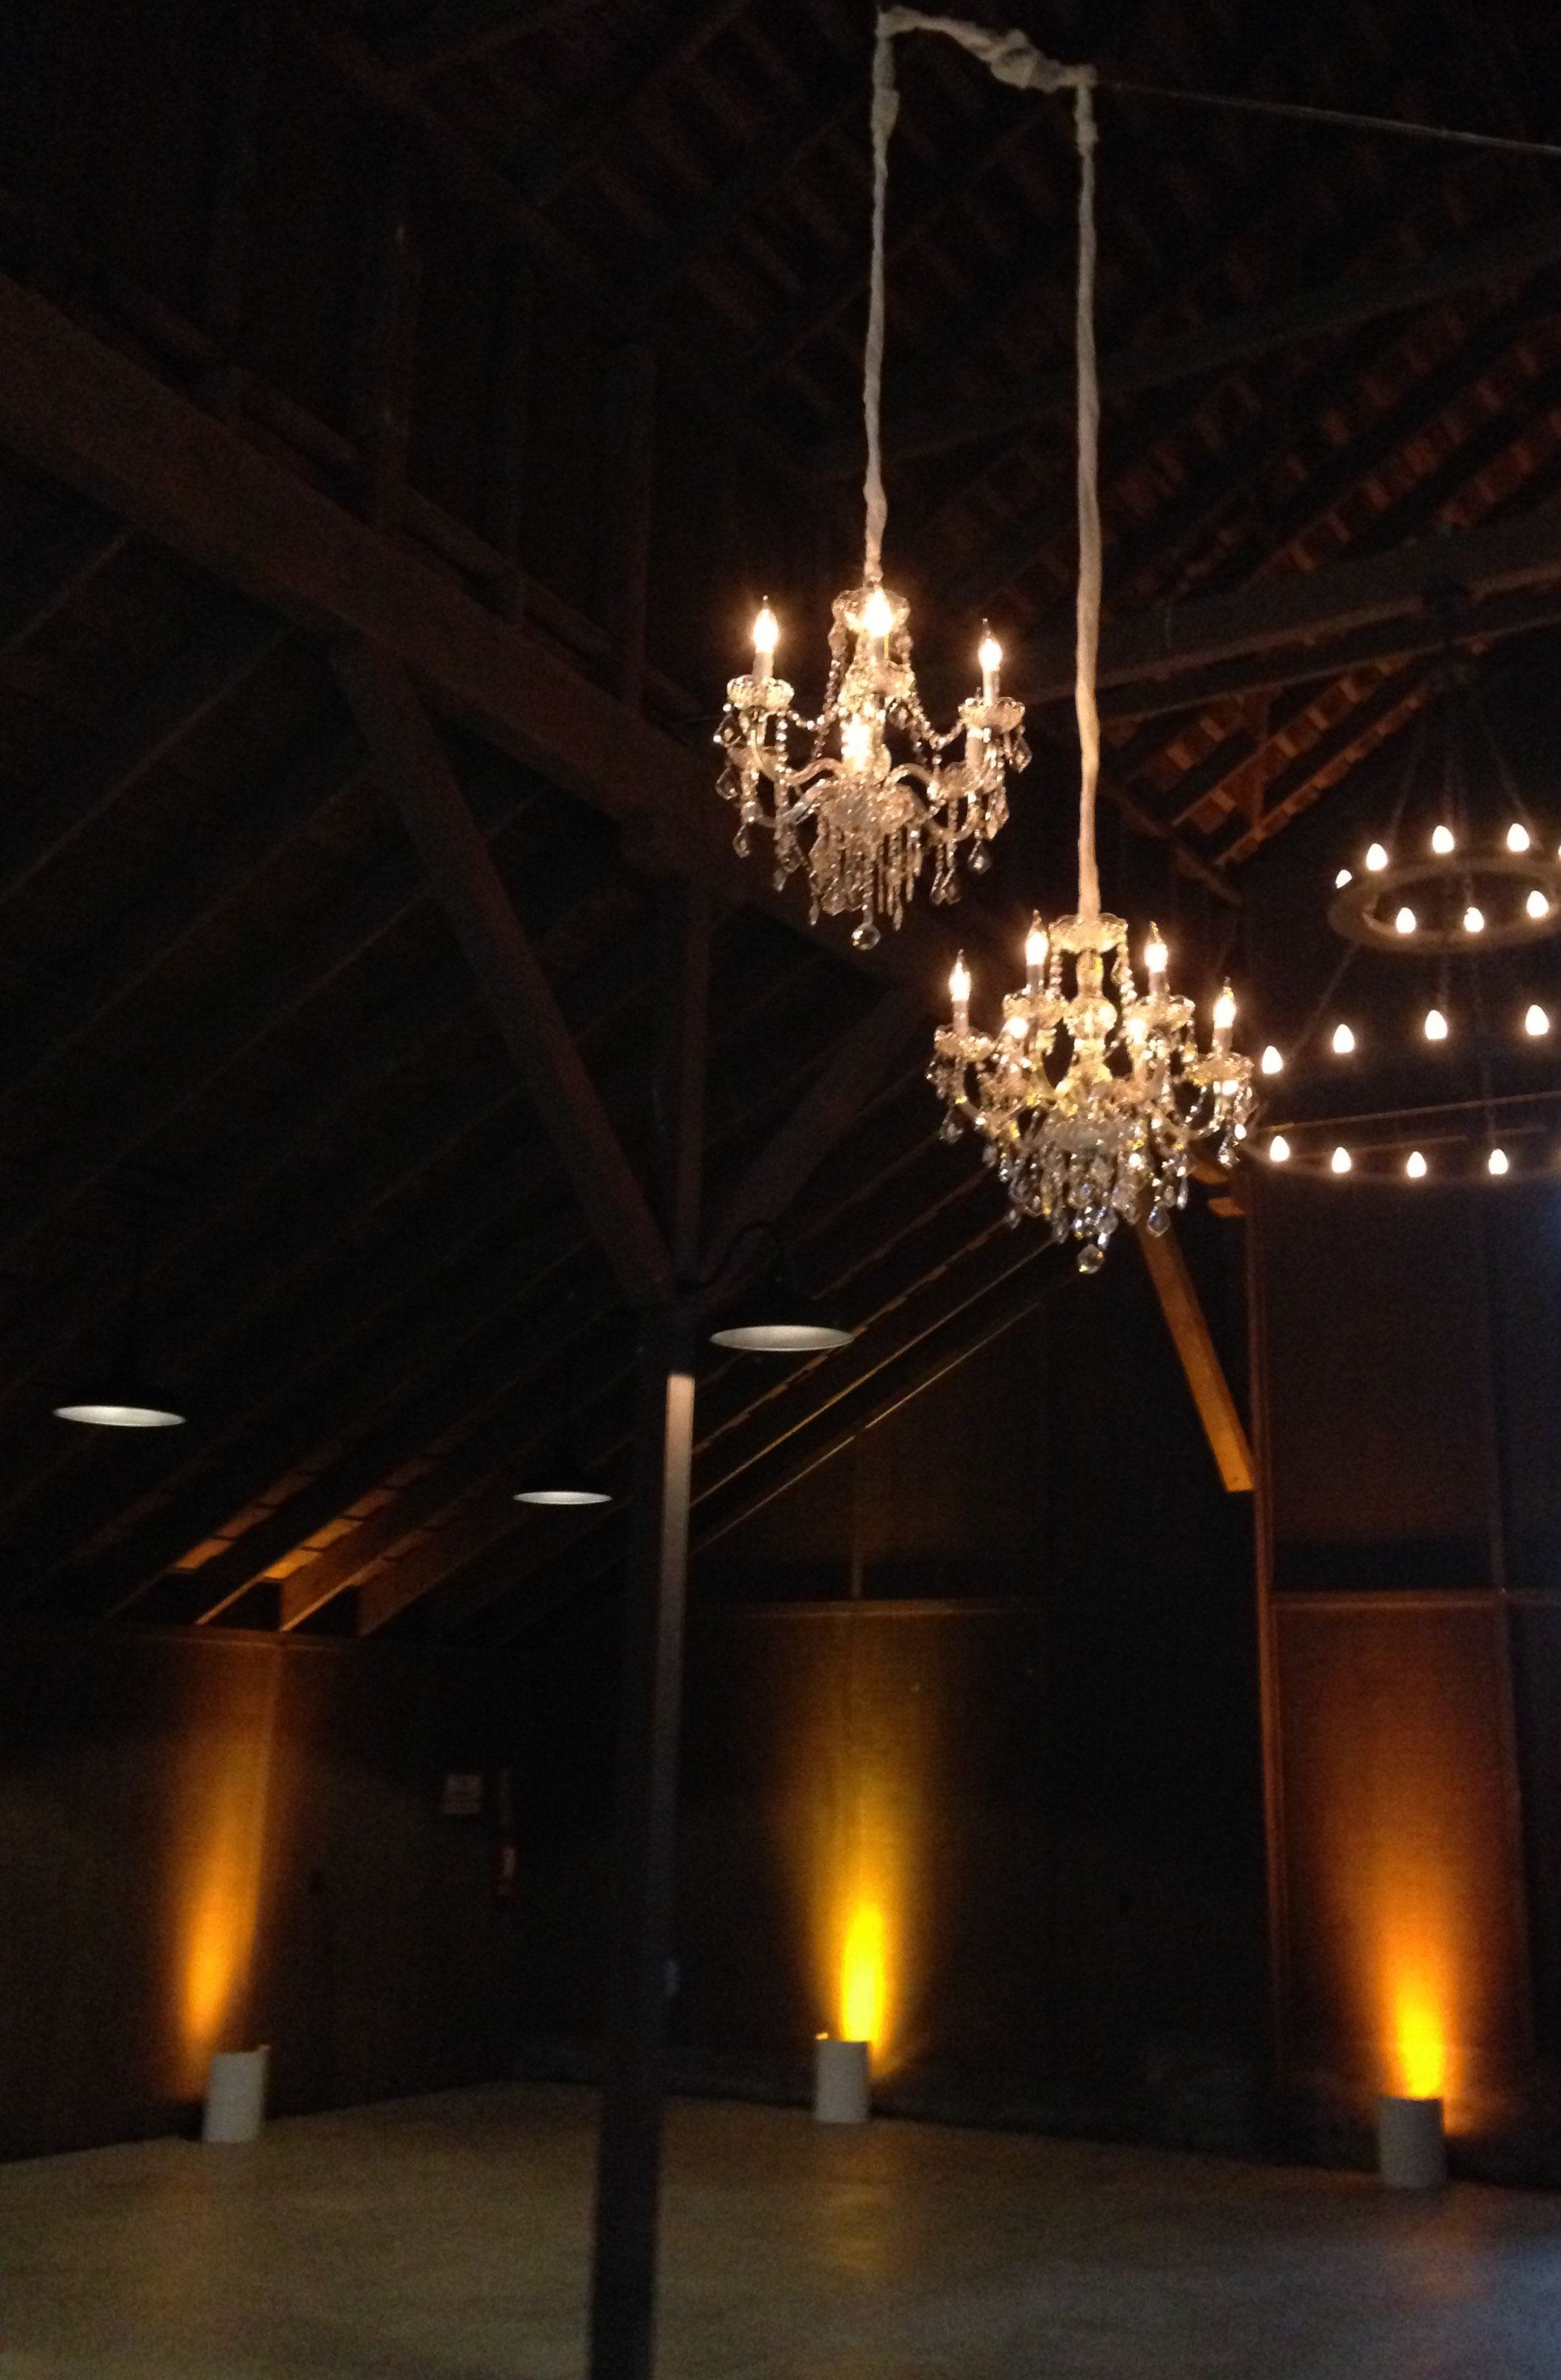 of chandeliers and lanterns available for rental from